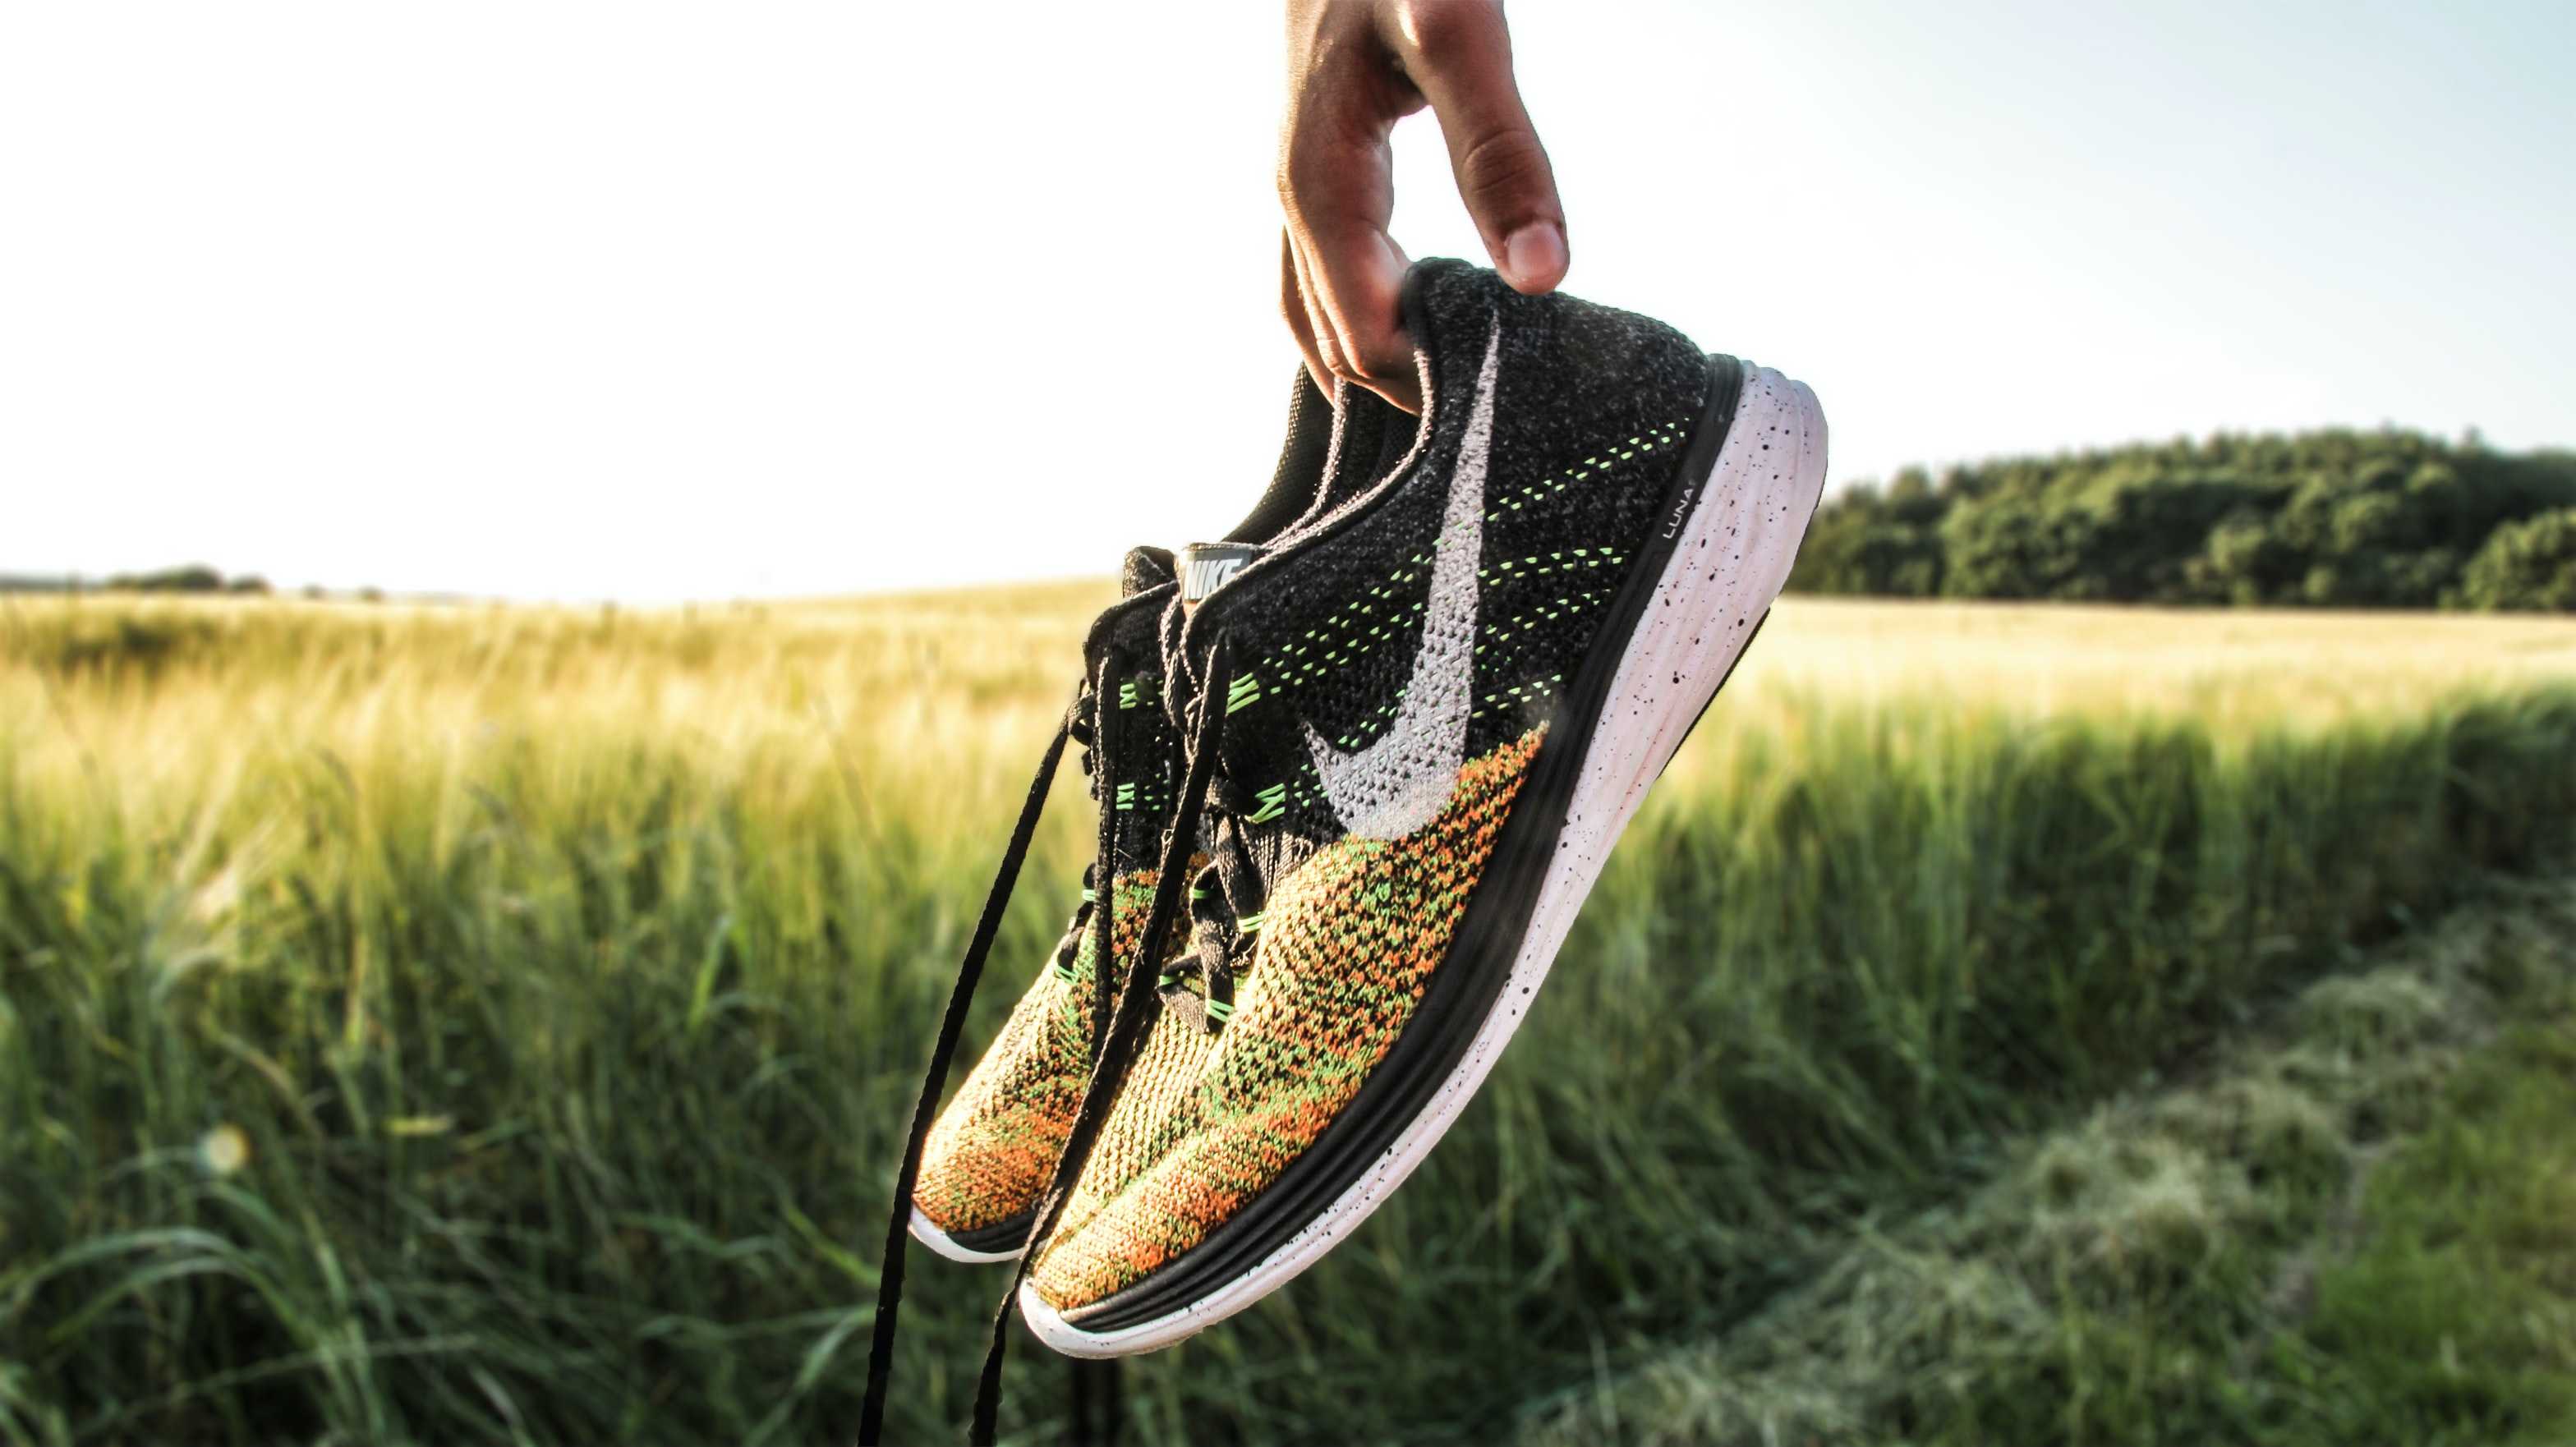 A person holding a pair of Nike trainer shoes in a field